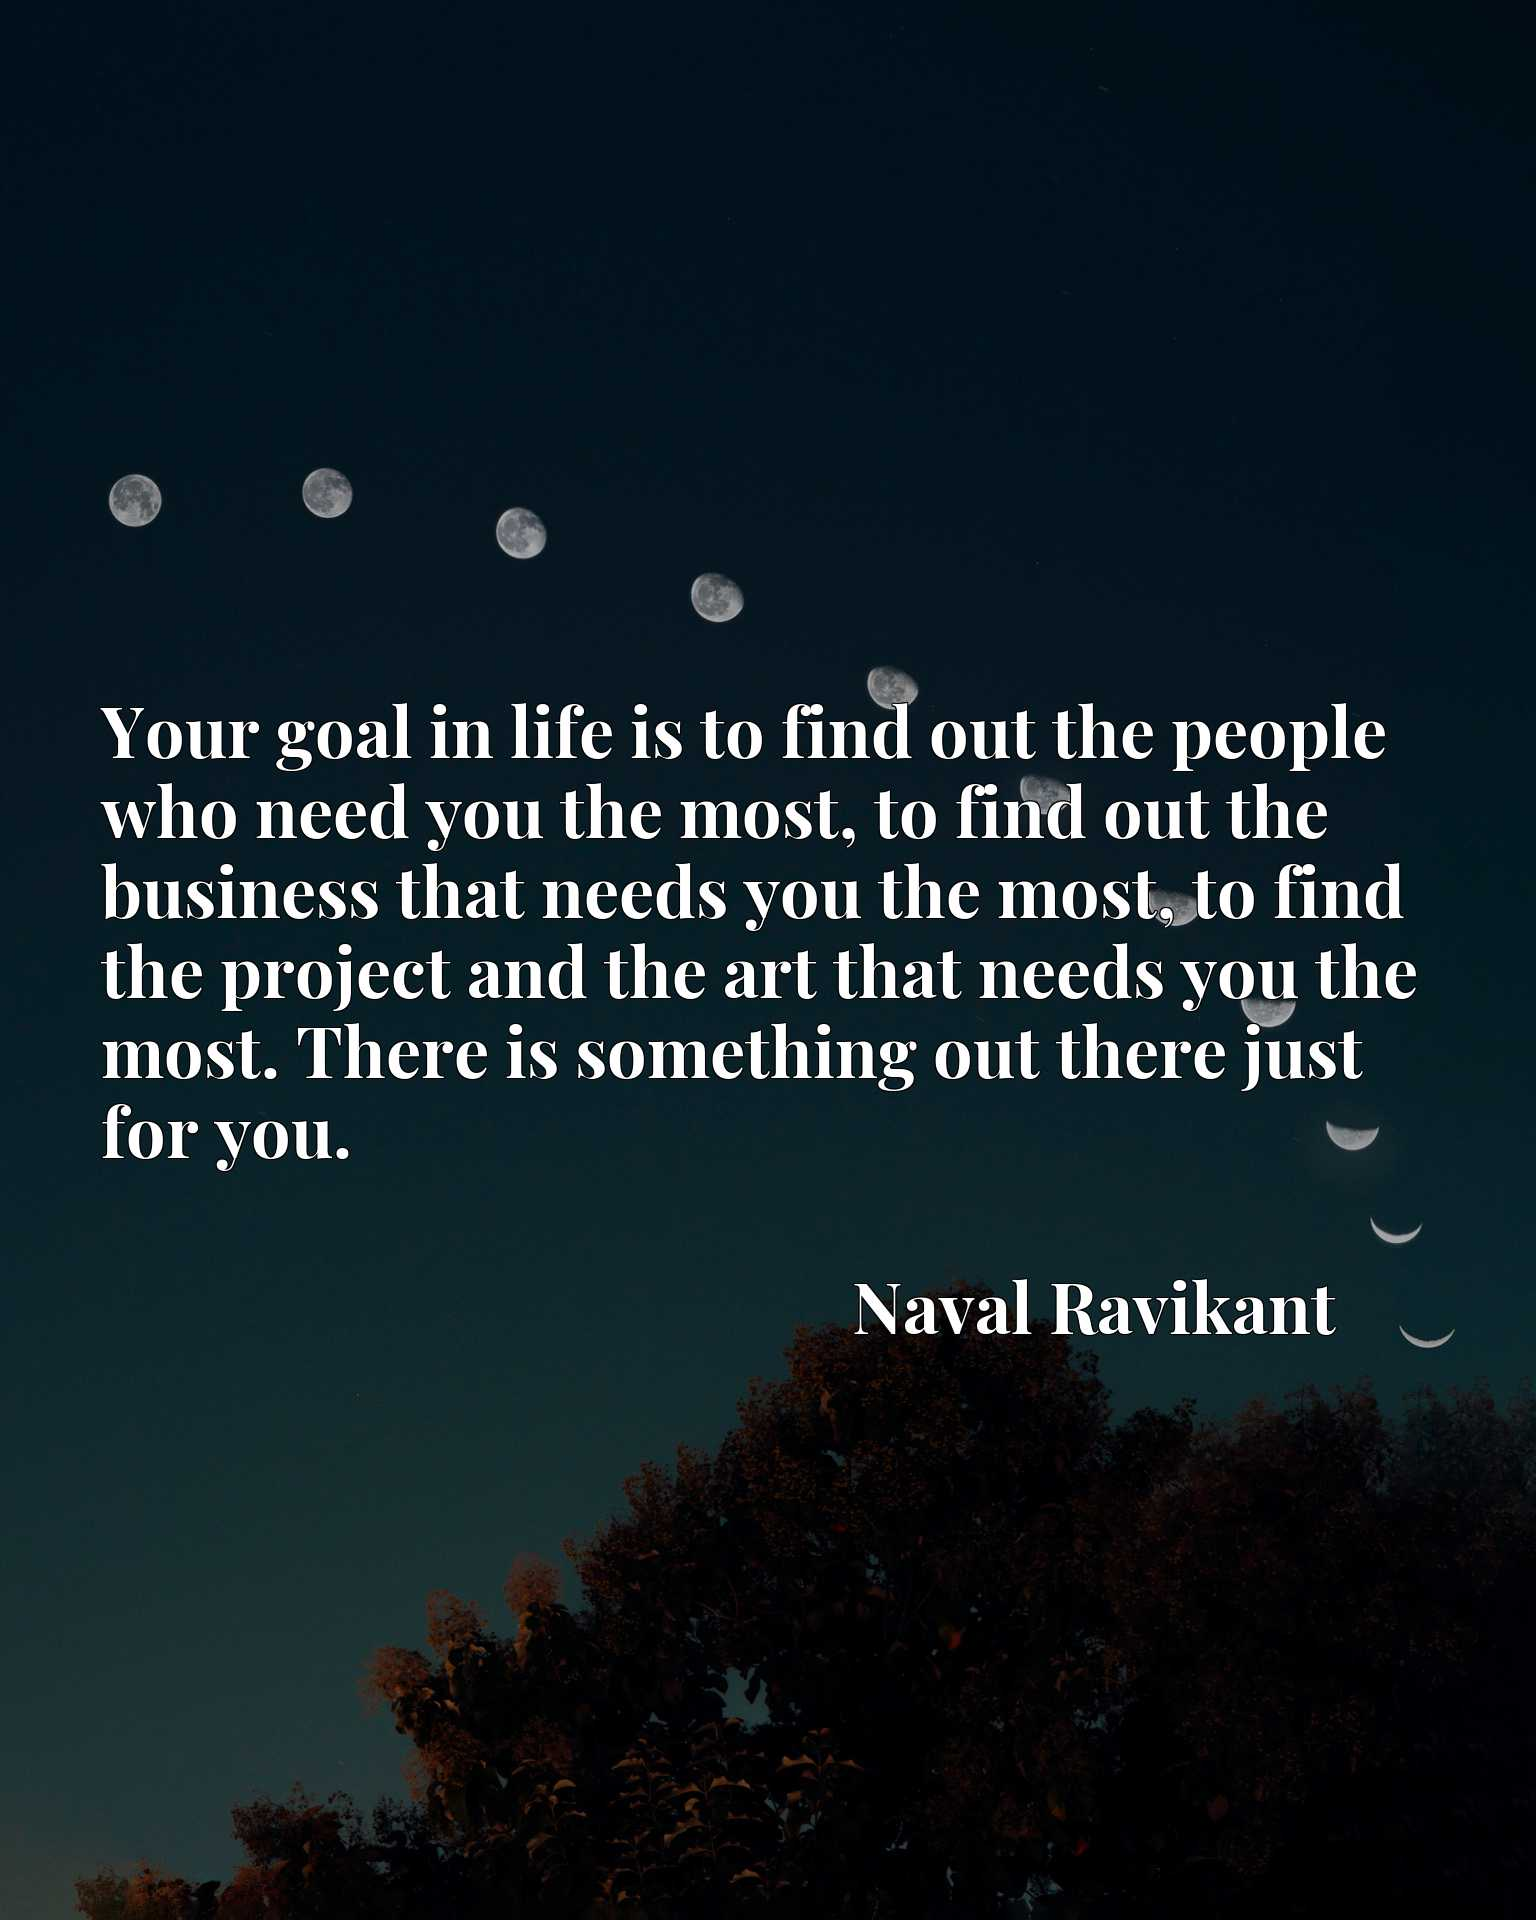 Your goal in life is to find out the people who need you the most, to find out the business that needs you the most, to find the project and the art that needs you the most. There is something out there just for you.